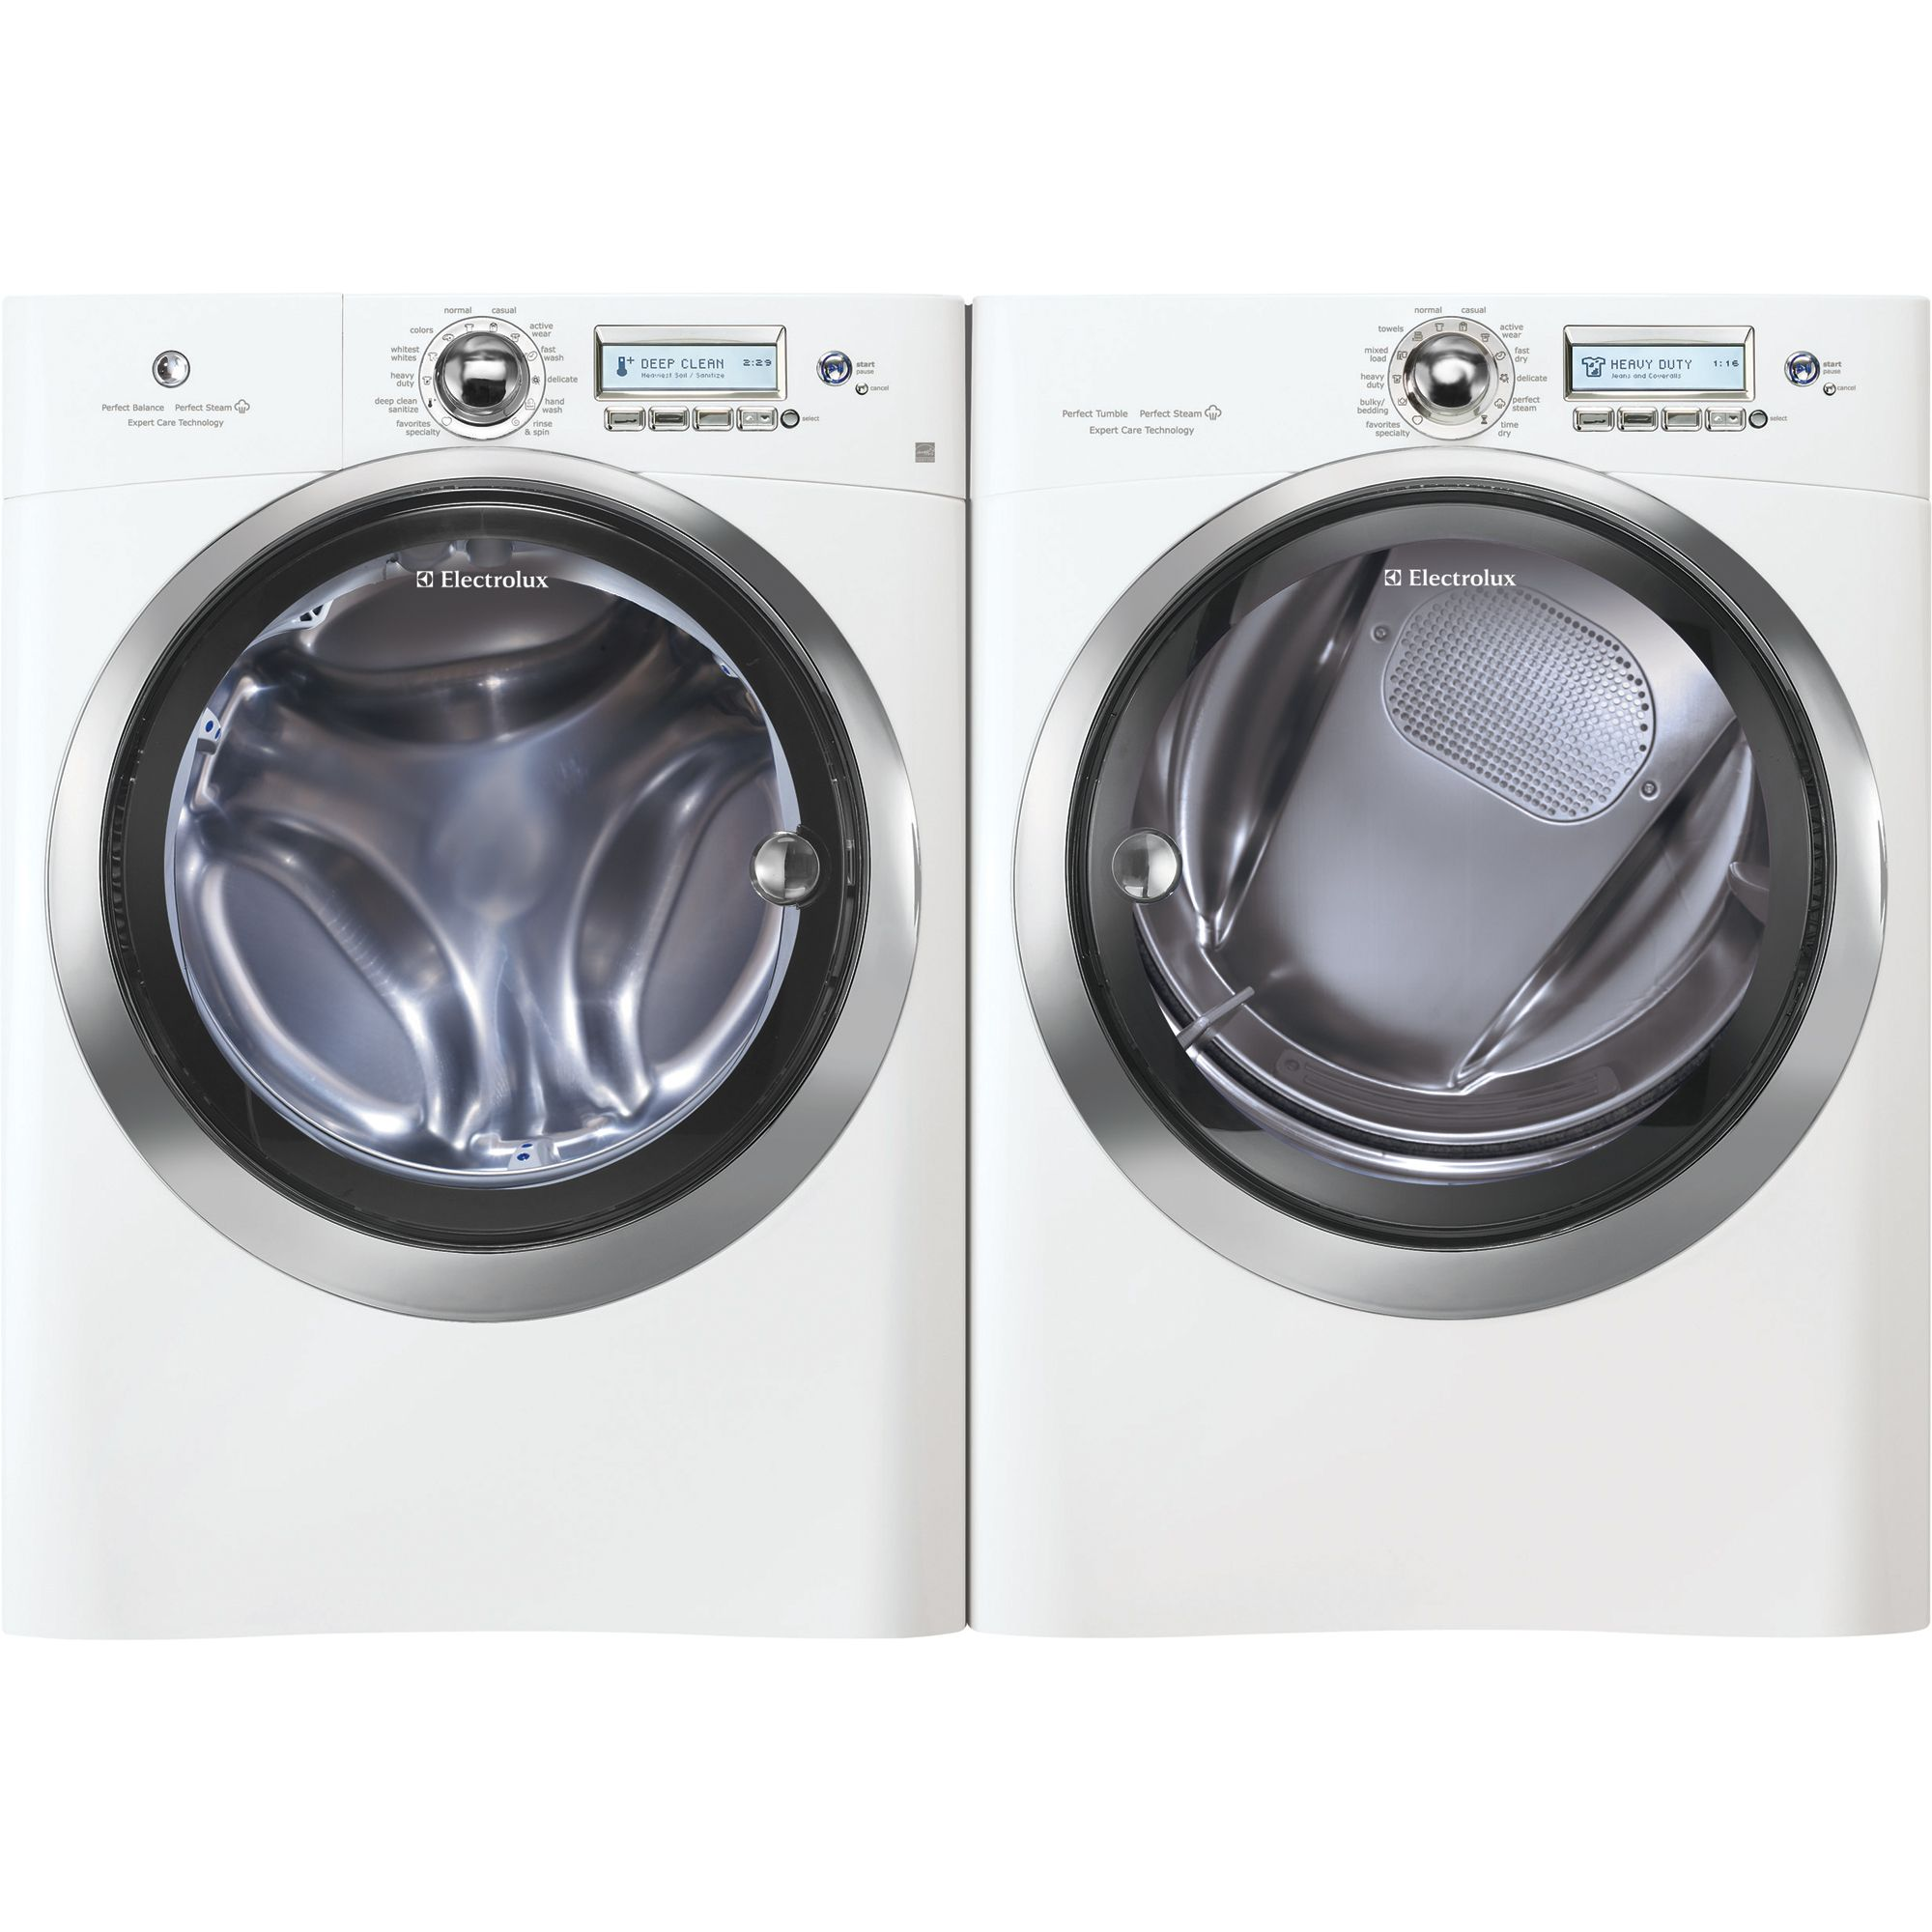 Electrolux EWMGD70JIW 8.0 cu. ft. Steam Gas Dryer - Island White